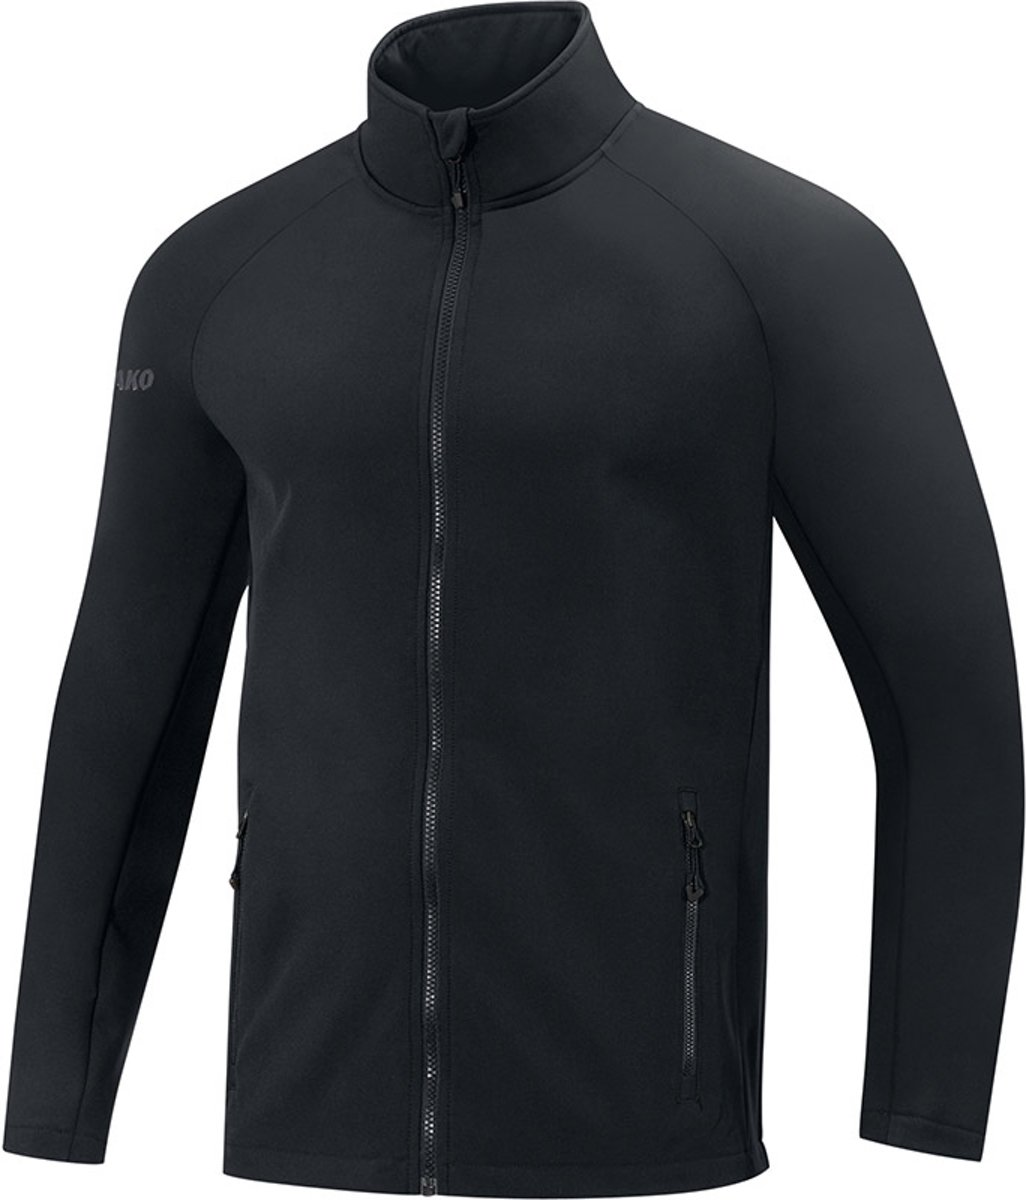 Jako Team Dames Softshell Jas - Softshelljassen  - zwart - 44